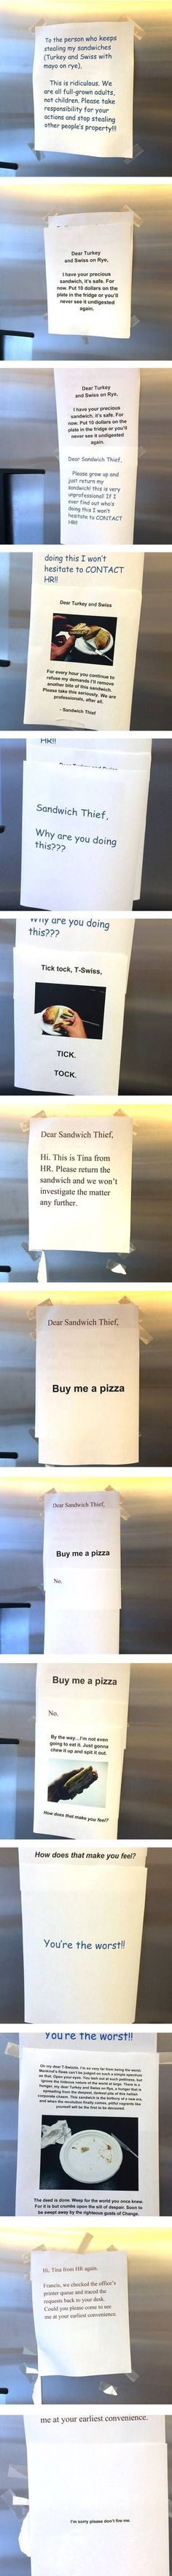 Sandwich Thief #lol #haha #funny